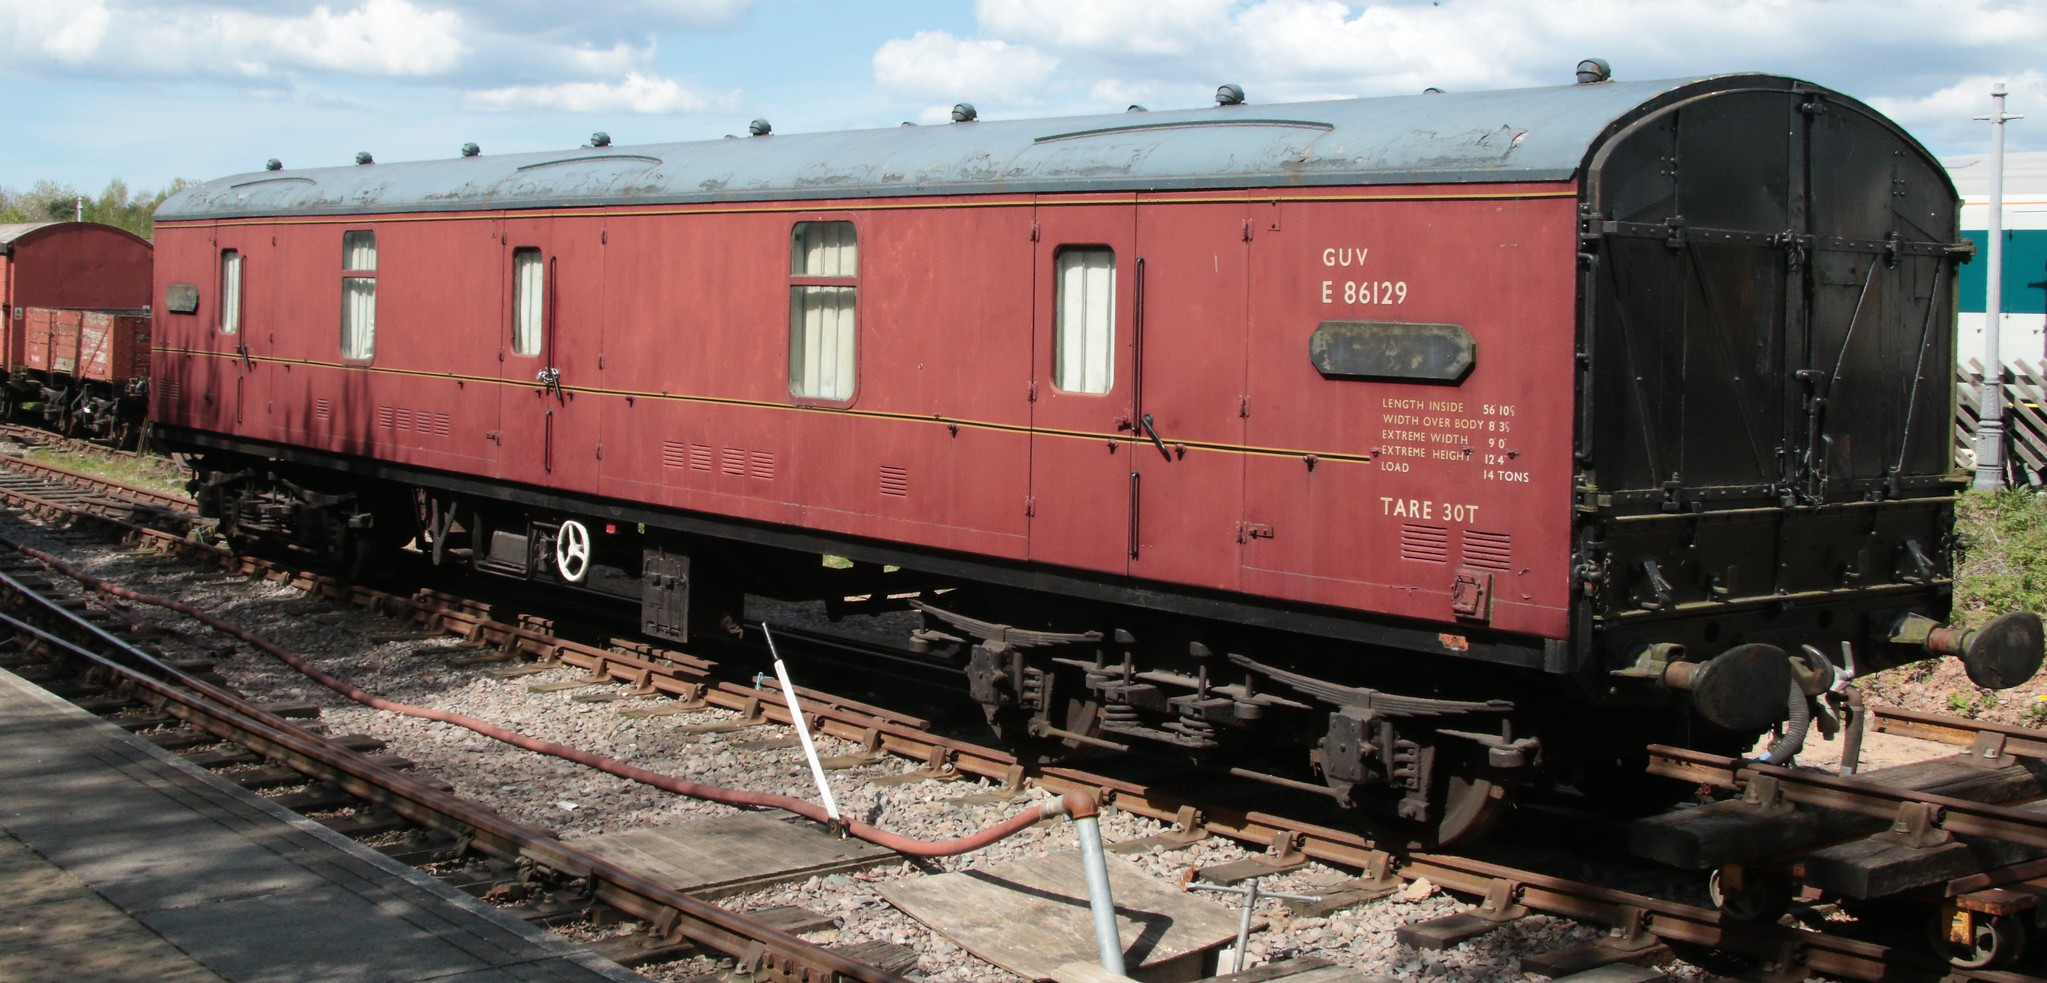 GUV E86129 at the Great Central Railway North in April 2015. ©kitmasterbloke